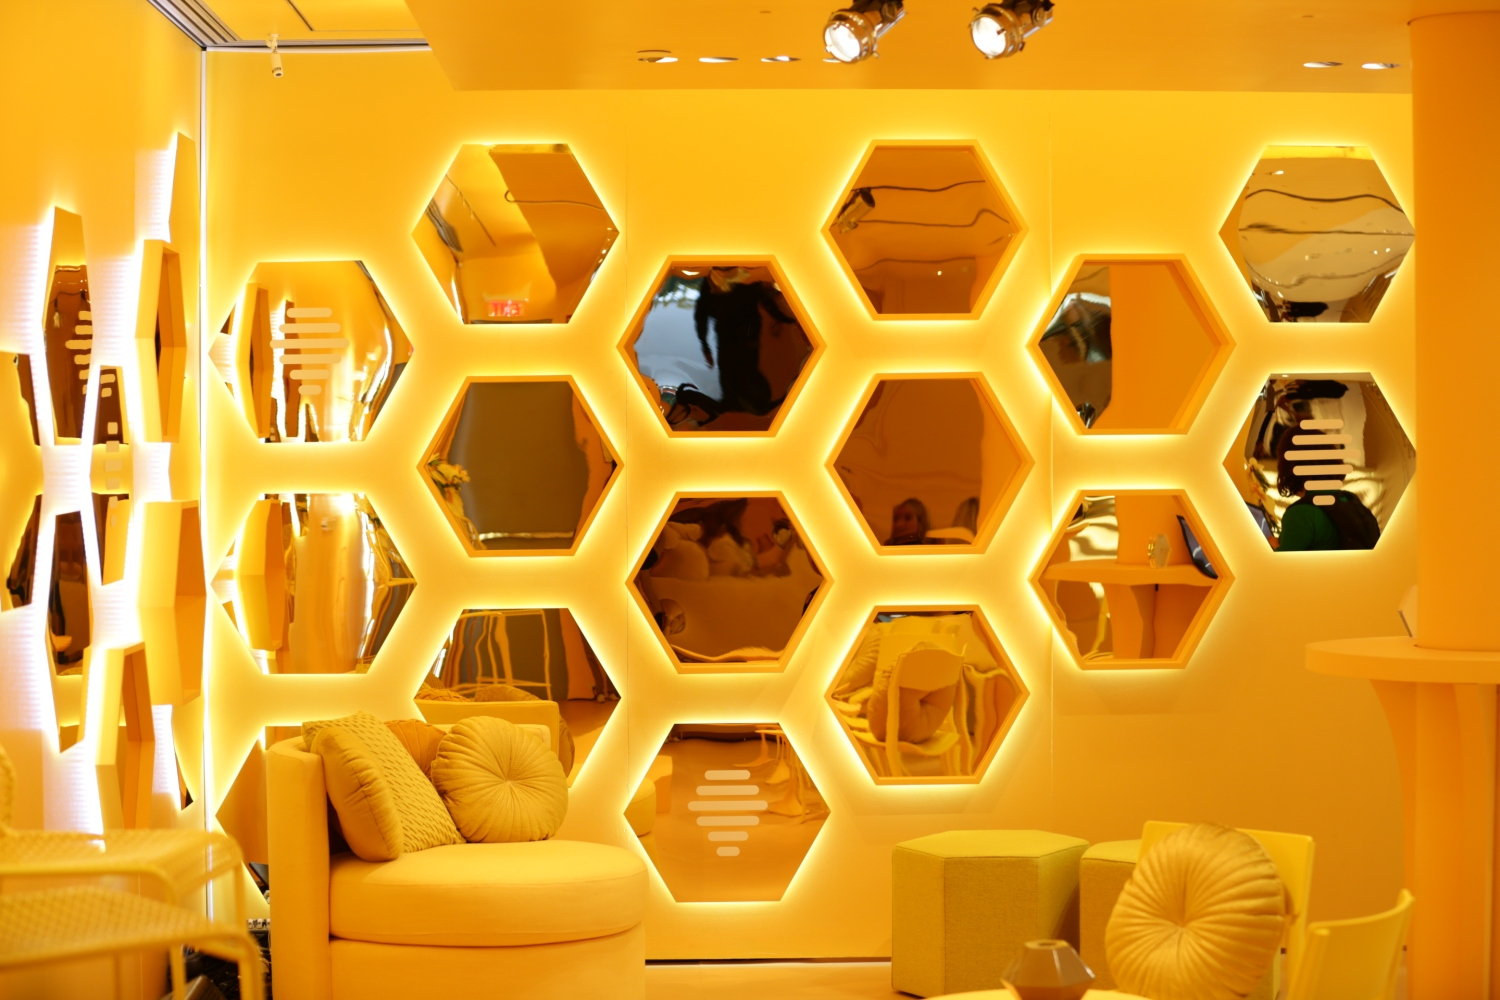 Bumble is opening a physical space in New York for dates to